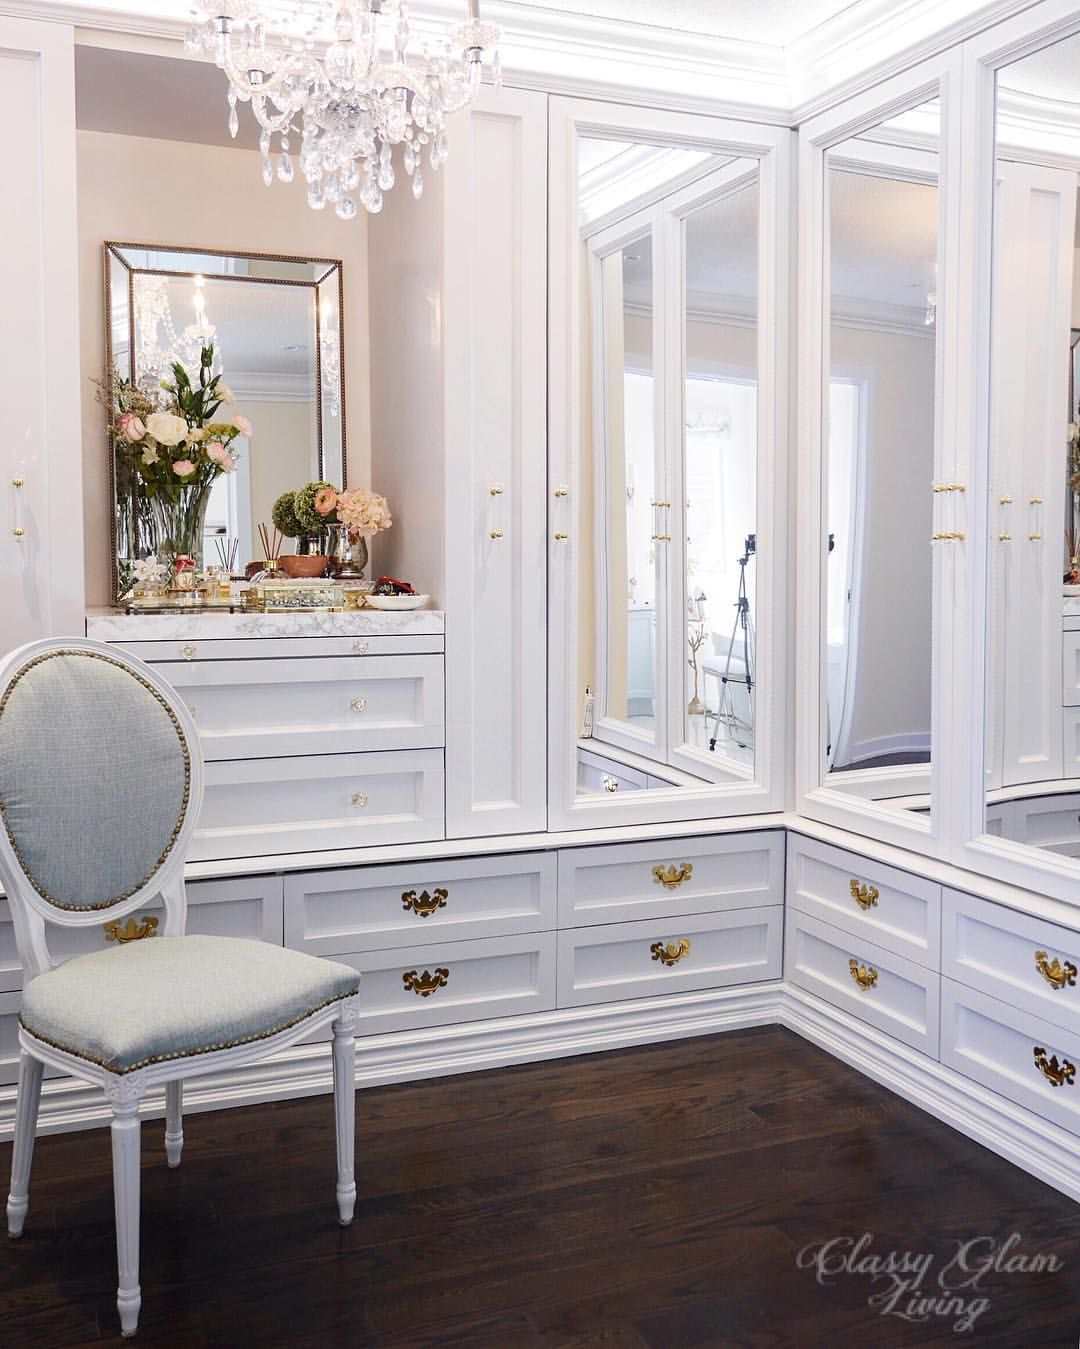 Dressing Room Walk In Closet Mirror Cabinet Doors Drawers Vanity Styling Cly Glam Living